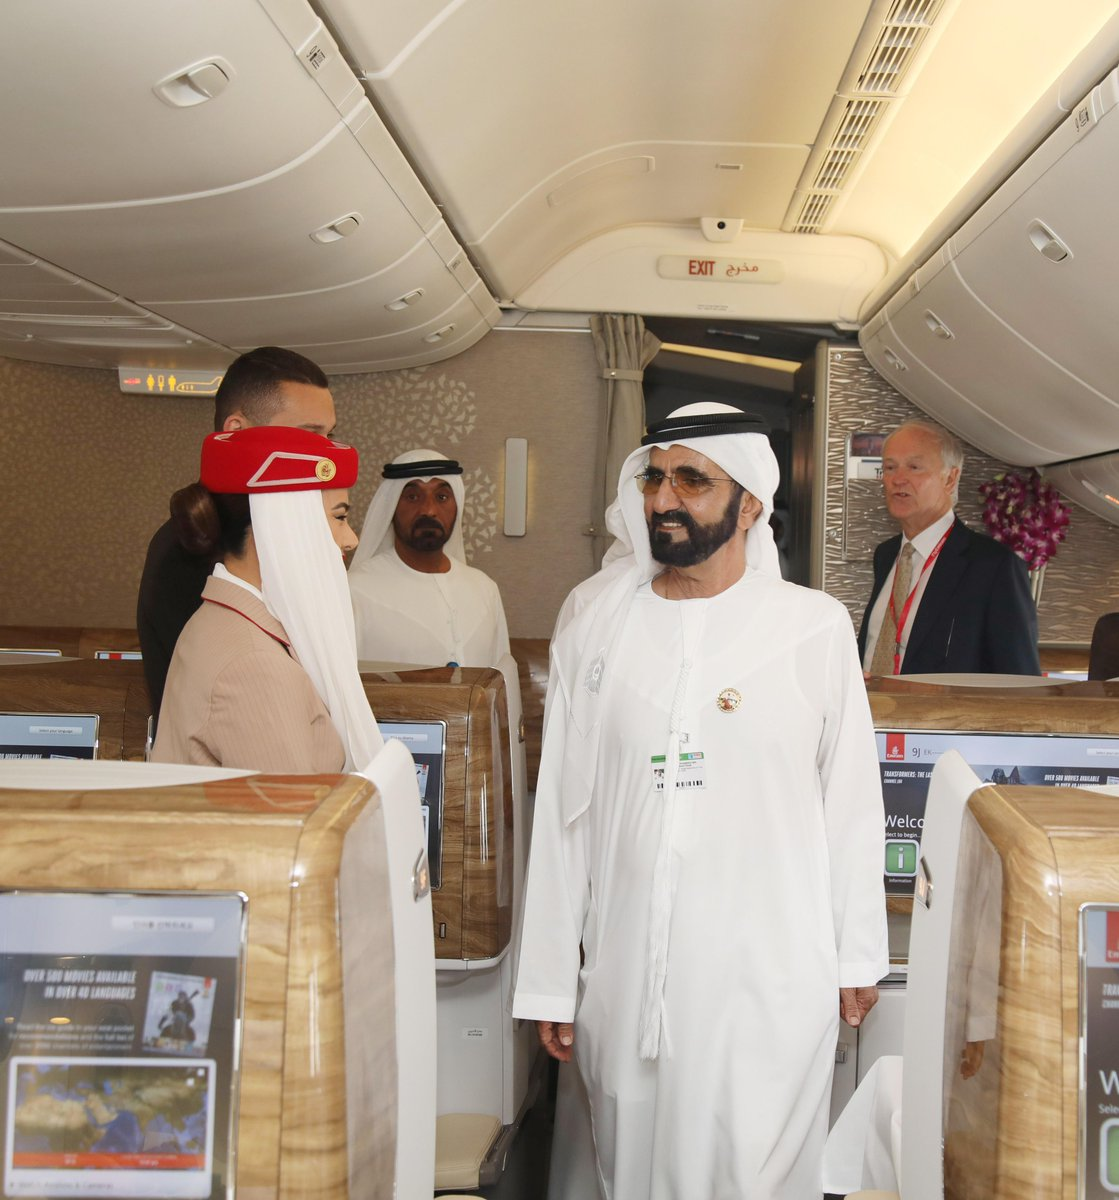 Emirates joins the UAE in congratulating @HHShkMohd for completing 15 exceptional years as UAE Vice President and Prime Minister, and Ruler of Dubai. Emirates has grown to be one of the world's leading international airlines under His Highness' dynamic vision and able leadership.